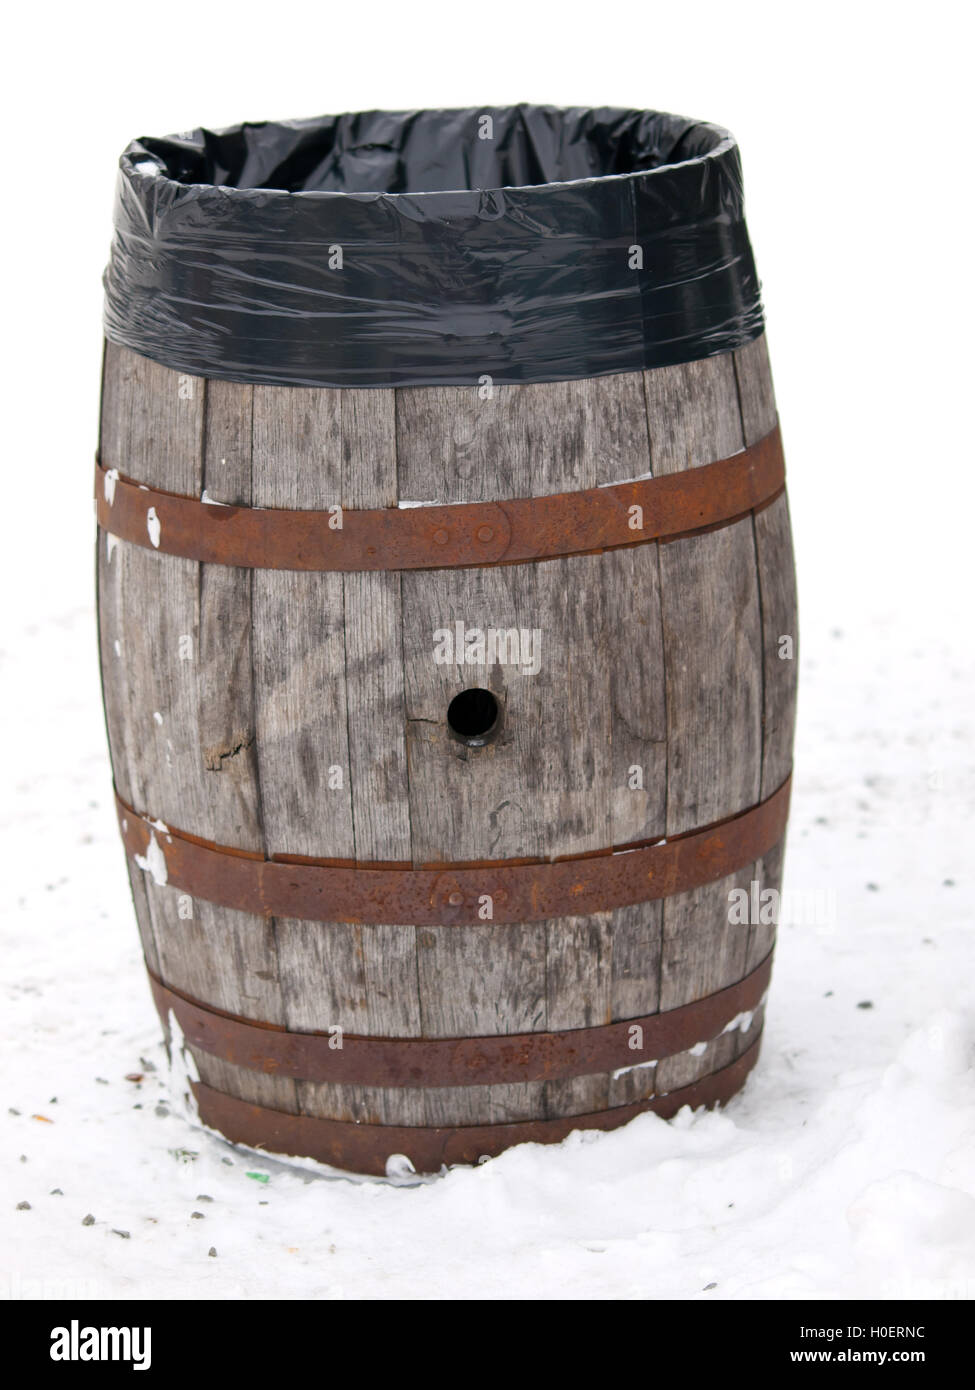 Old wooden baril reused as garbage container in ski resort - Stock Image